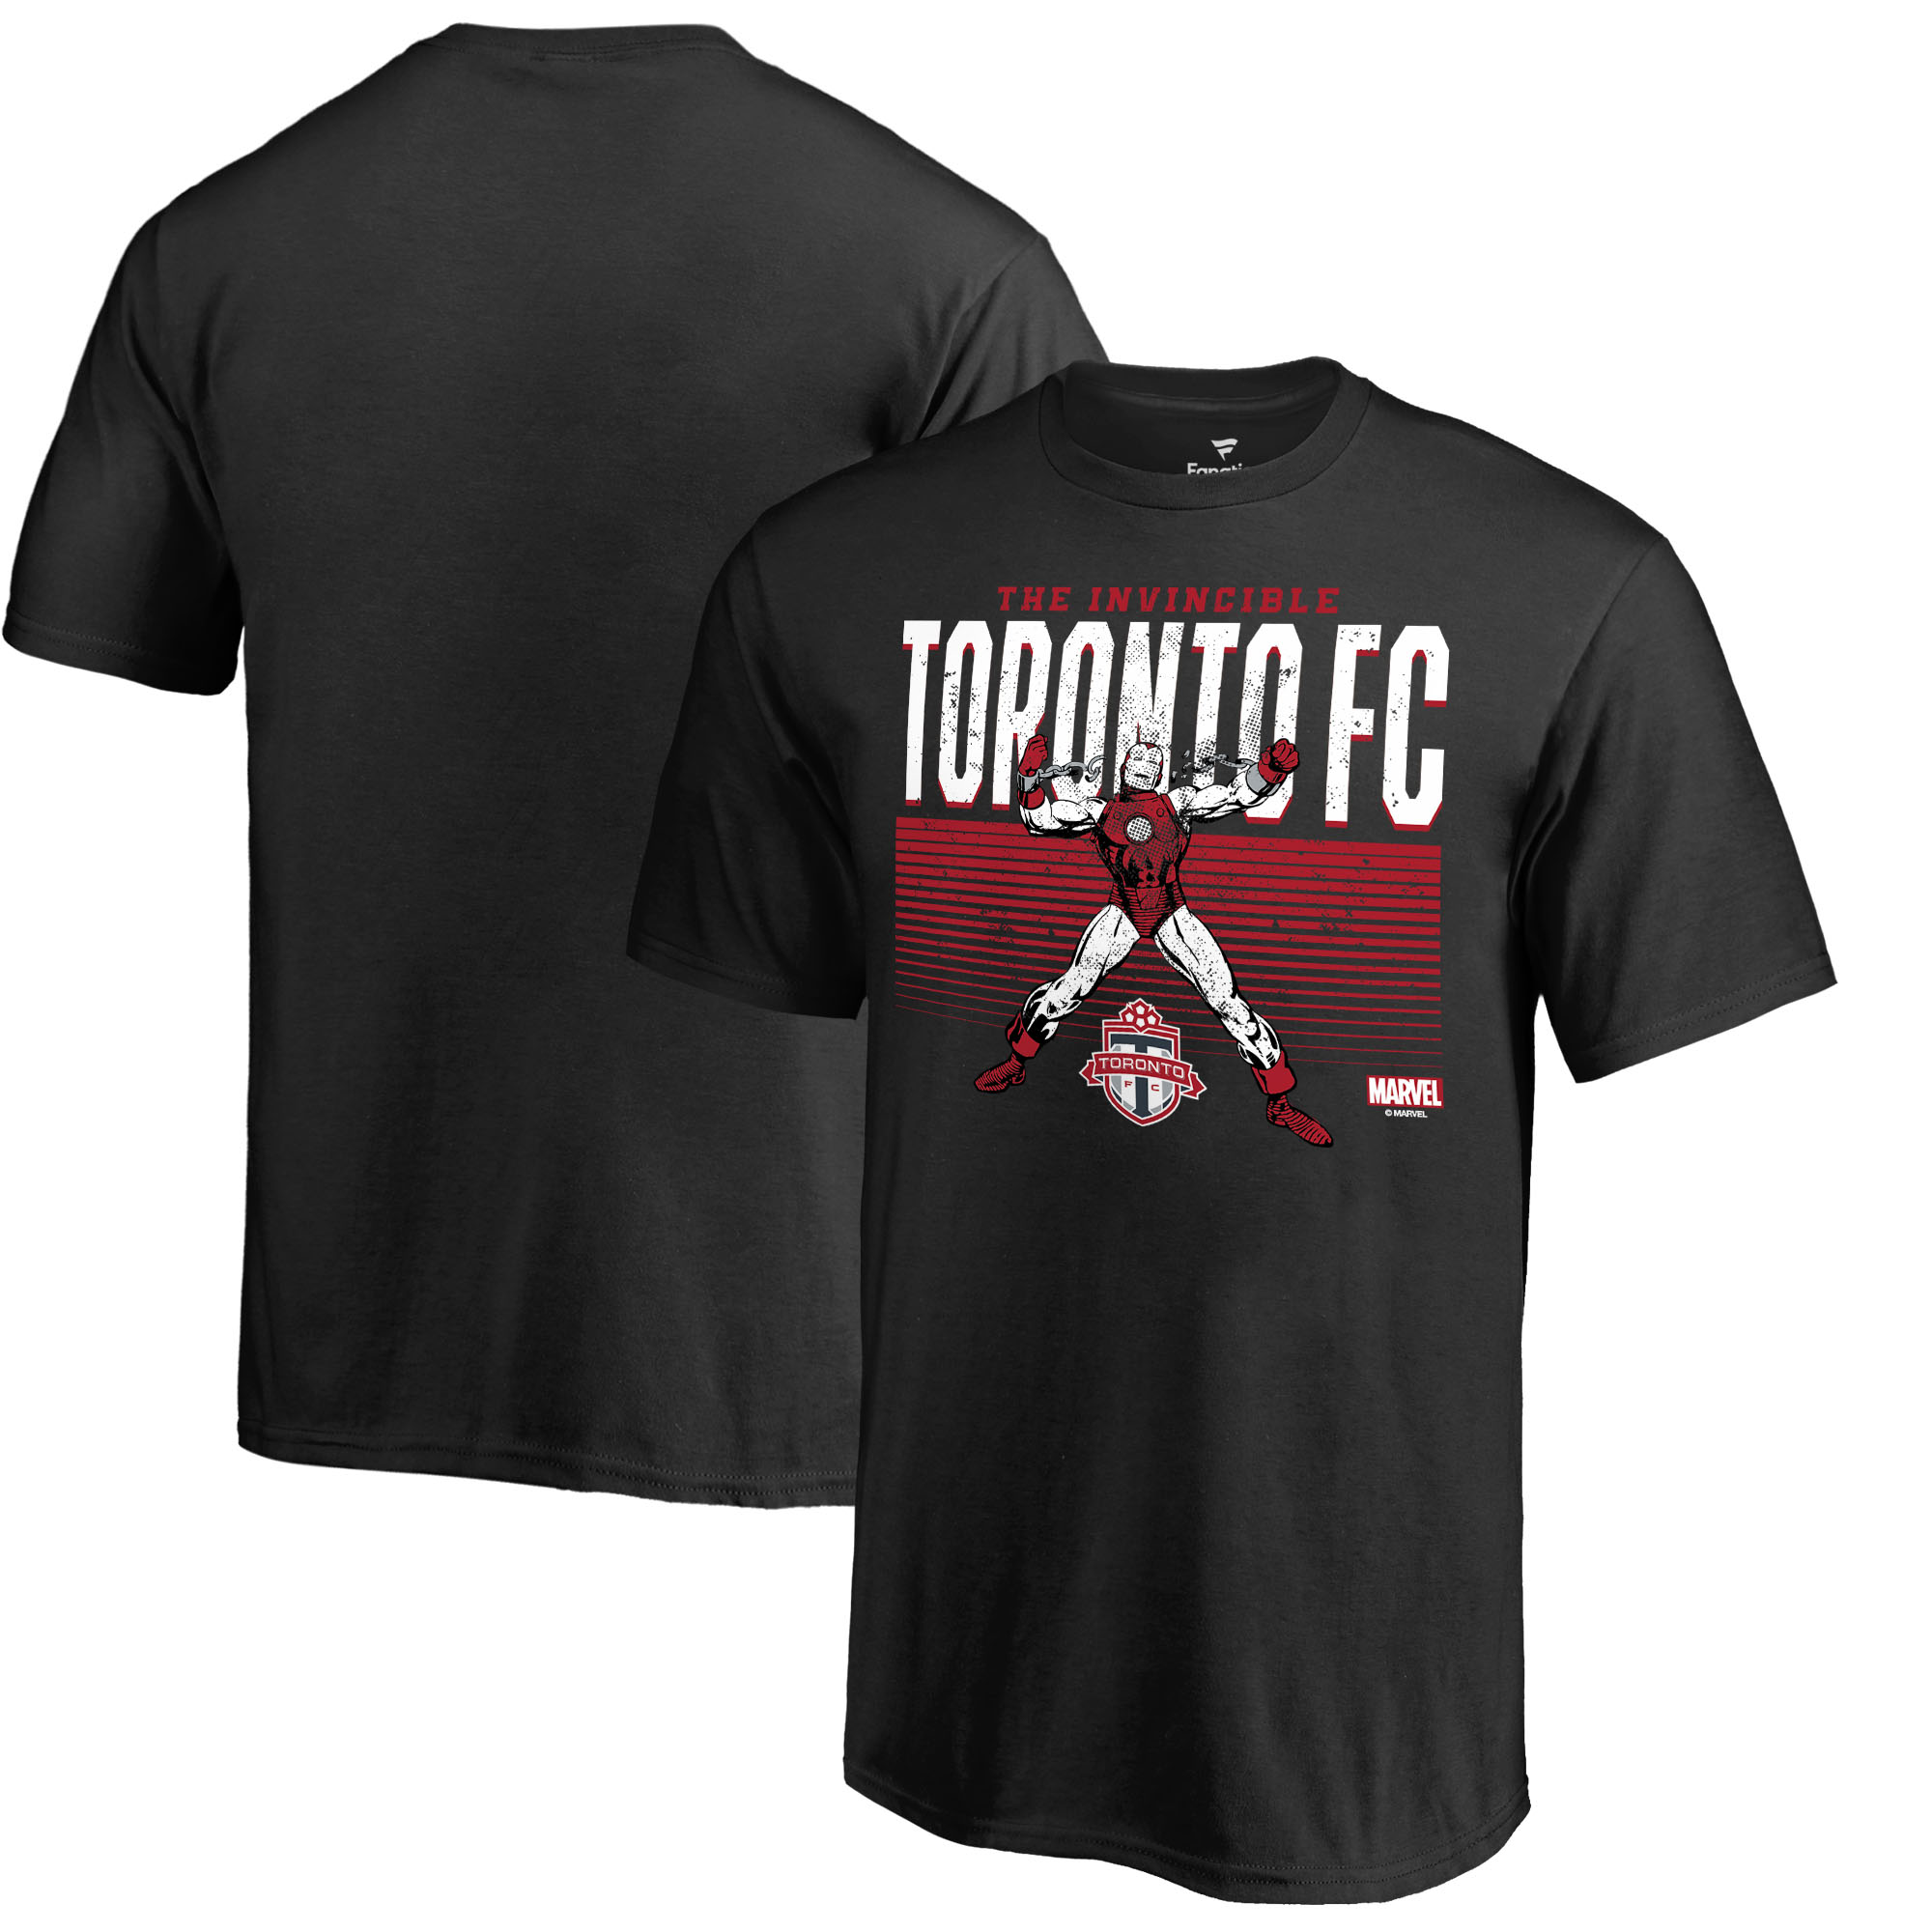 Toronto FC Fanatics Branded Youth MLS Marvel Iron Man Invincible T-Shirt - Black